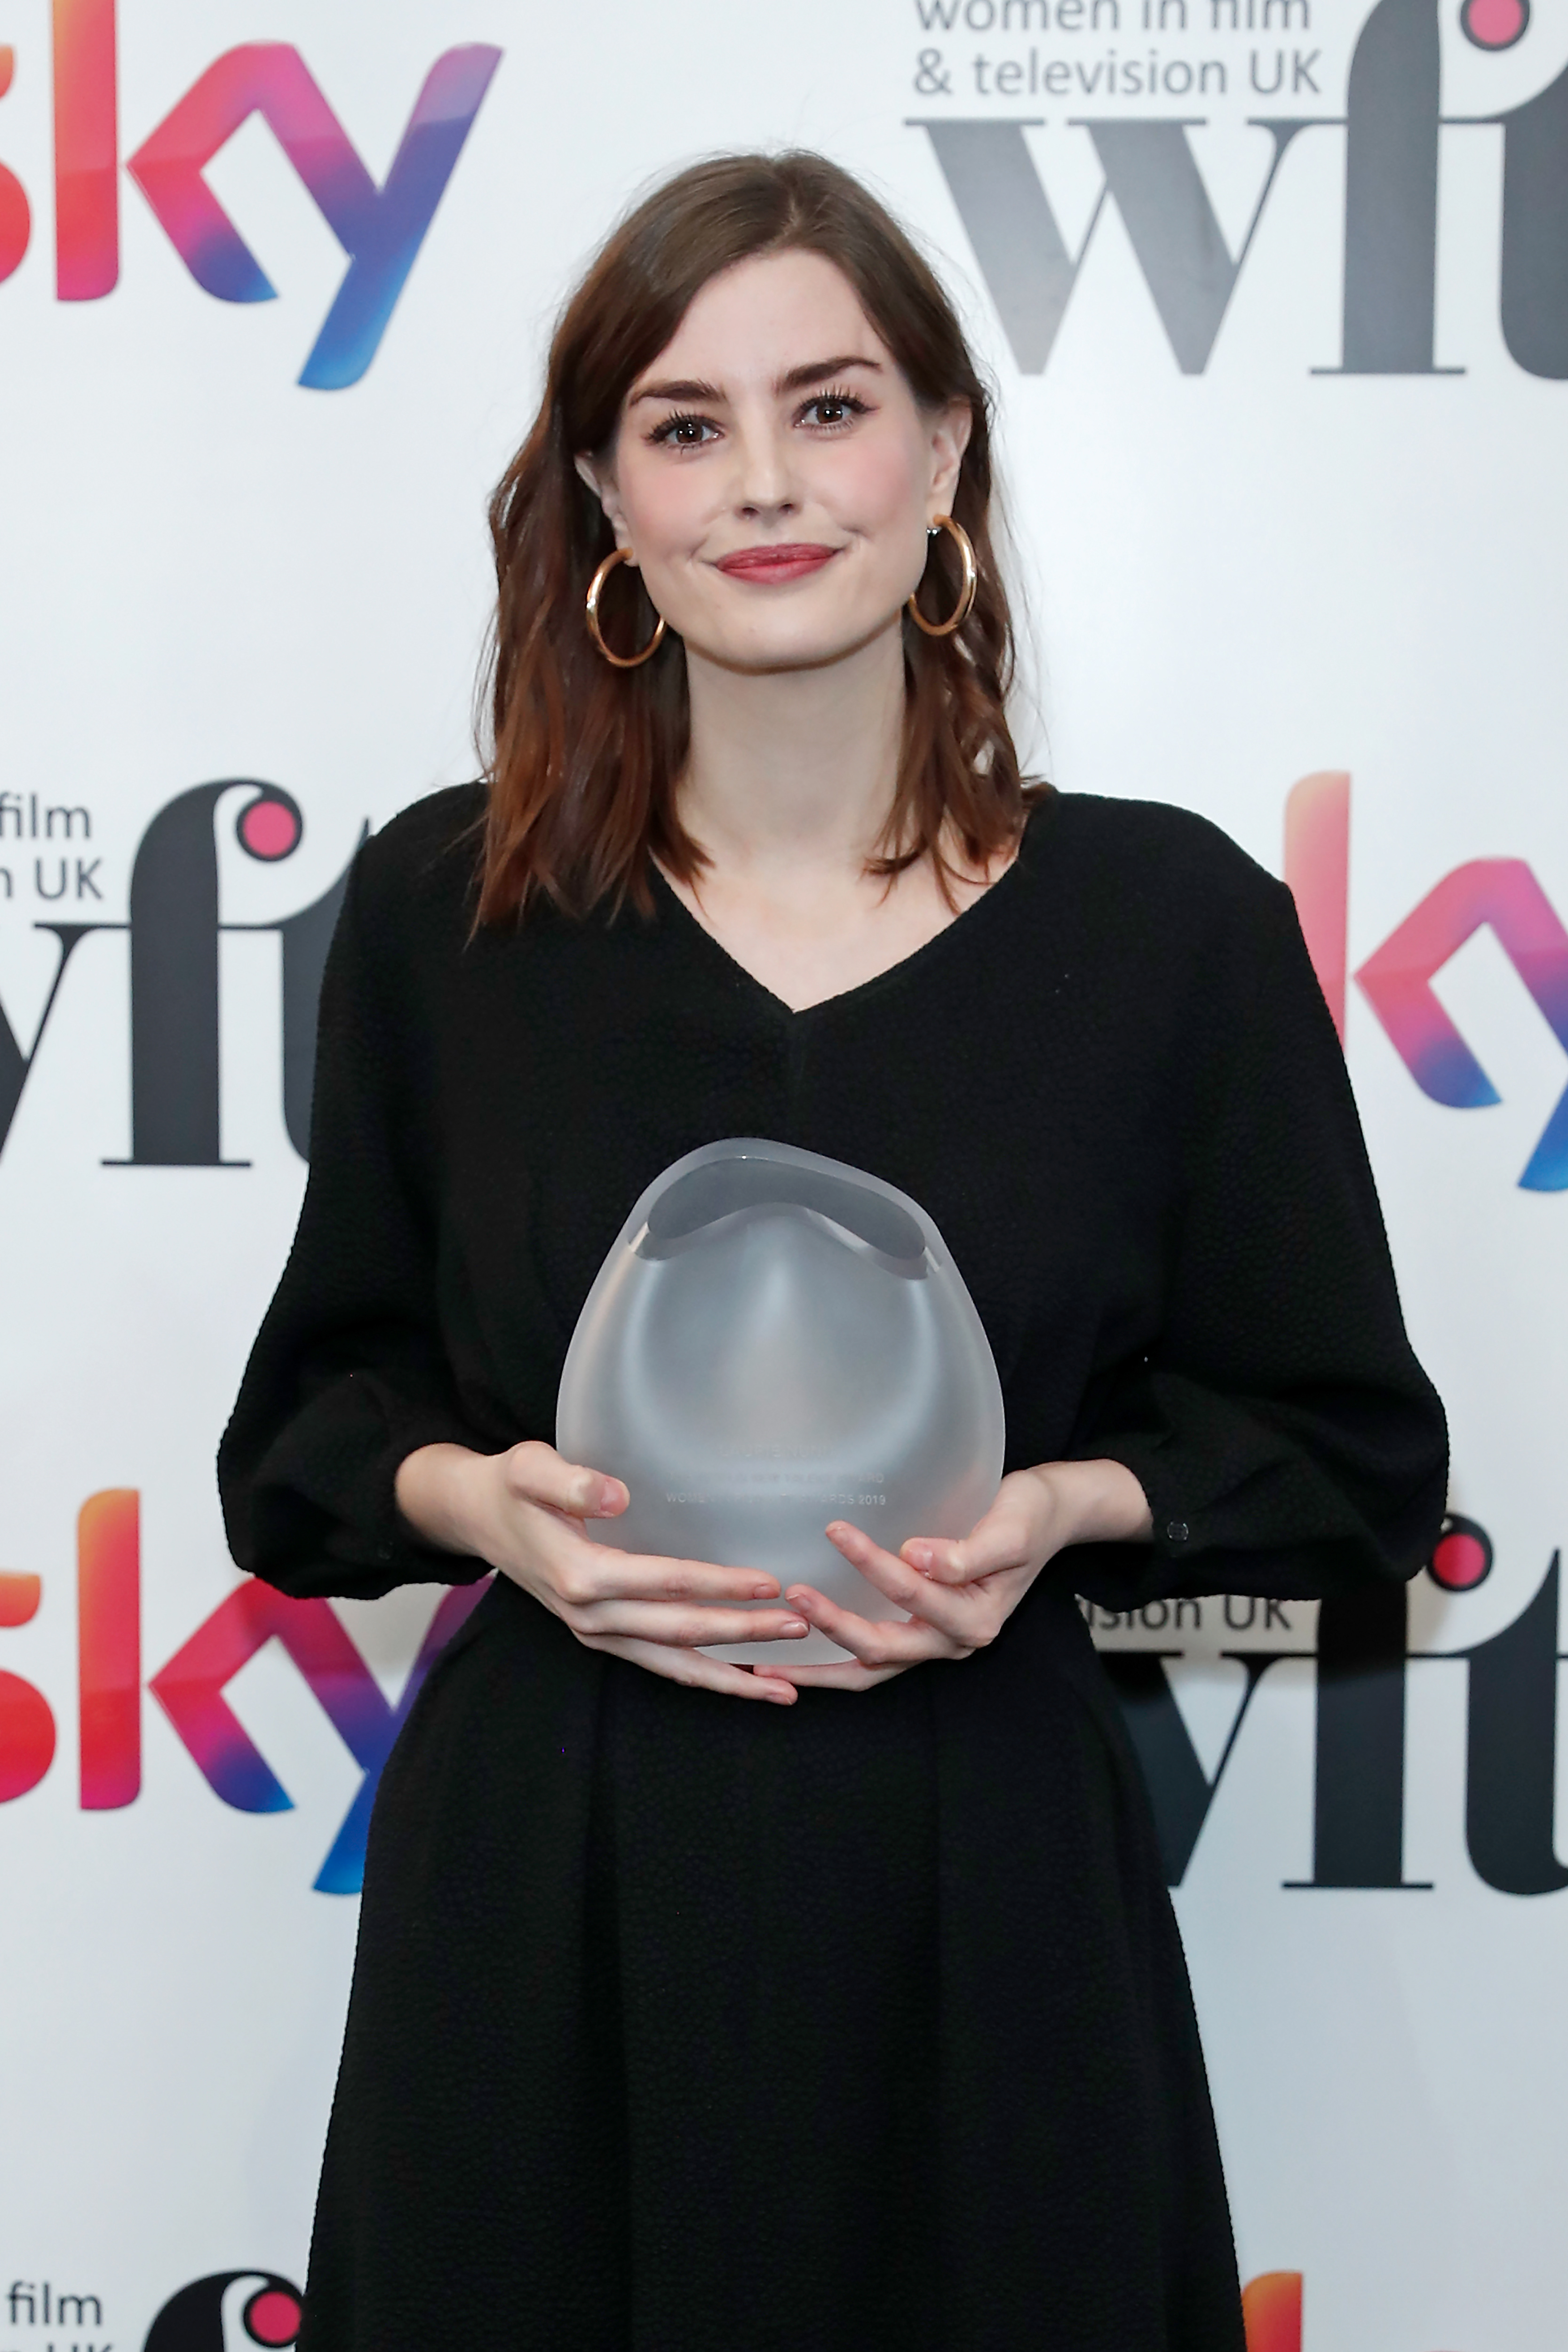 LONDON, ENGLAND - DECEMBER 06: Laurie Nunn Laurie Nunn winner of the Netflix New Talent Award in the winners room at the Women in Film and TV Awards 2019 at Hilton Park Lane on December 06, 2019 in London, England. (Photo by David M. Benett/Dave Benett/Getty Images for Women in Film and TV)